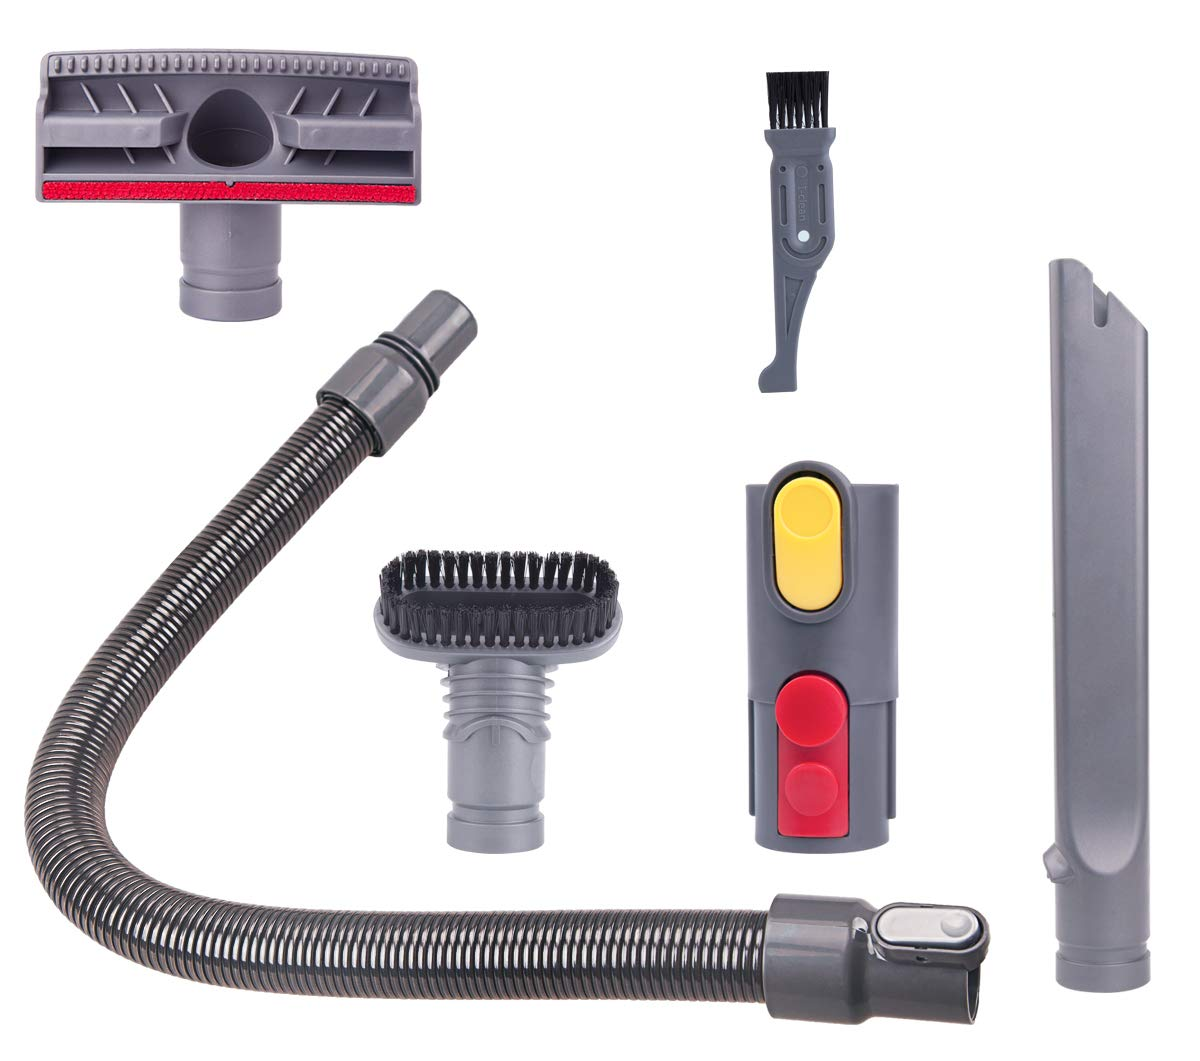 I clean Replacement Dyson Attachments, 5 Packs for Dyson V8 Absolute,V8 Animal, V10 Absolute,V7 Motorhead,V6, DC58,DC59 Absolute Cordless Stick Vacuum Parts by I clean